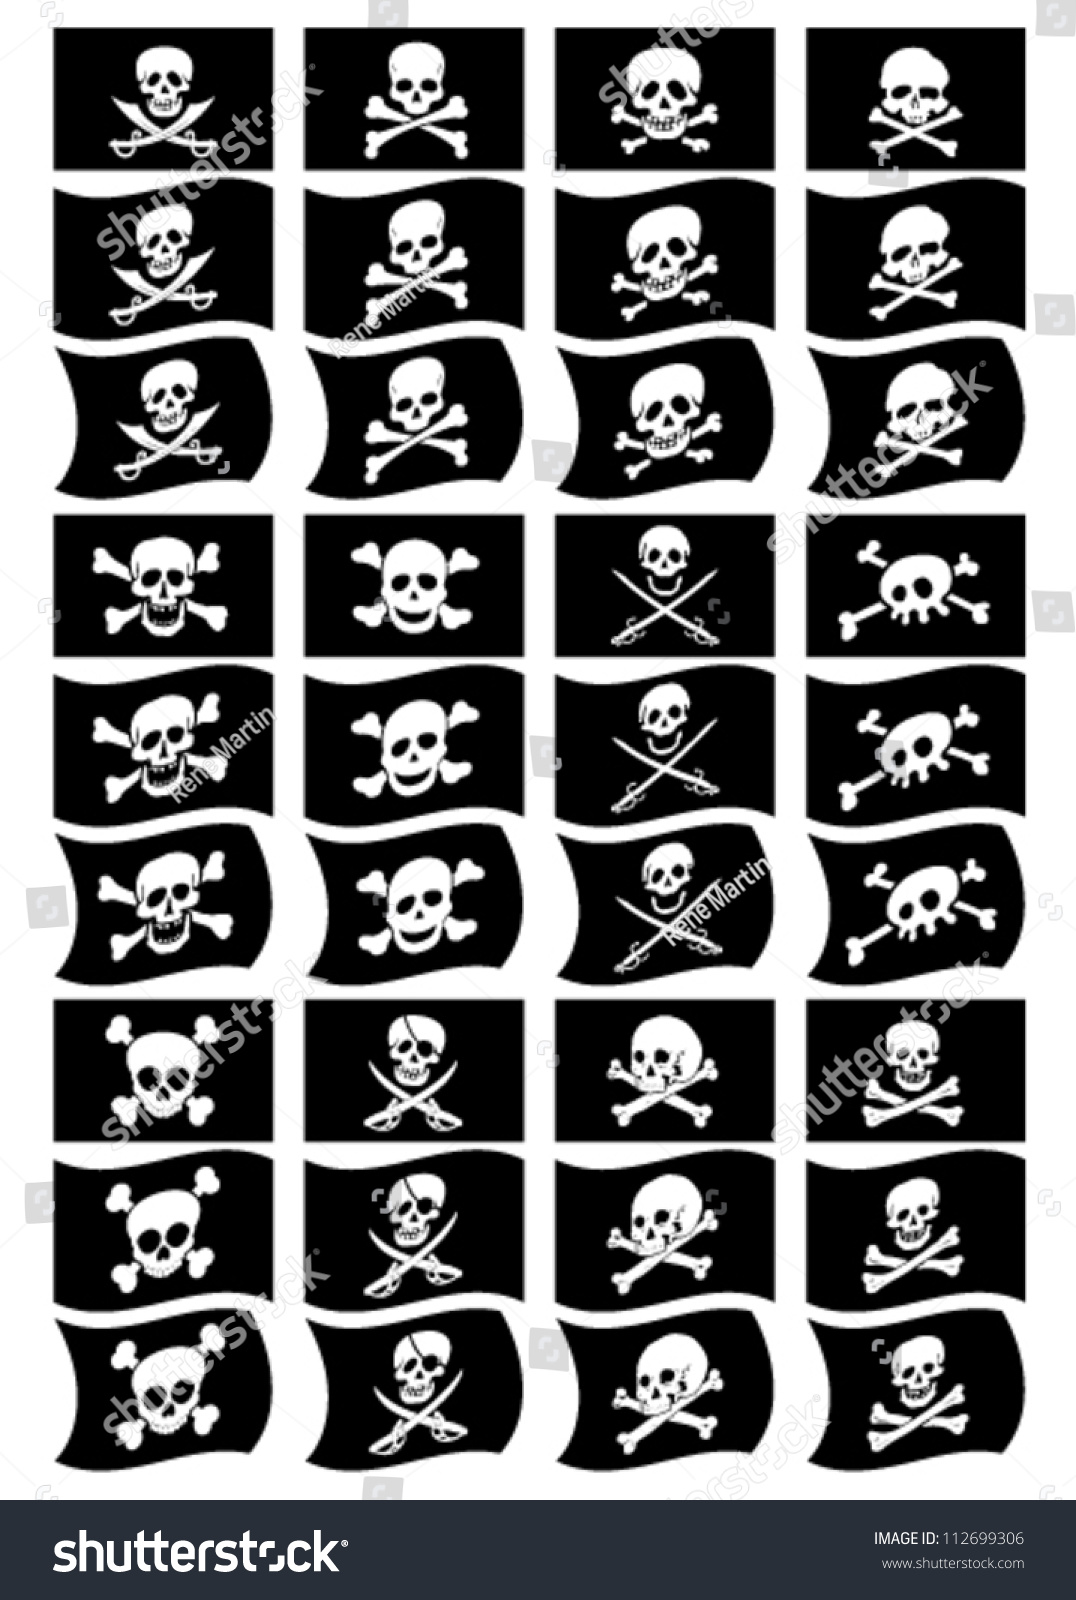 Flag Pirate Masonic Symbols And Their Meaning